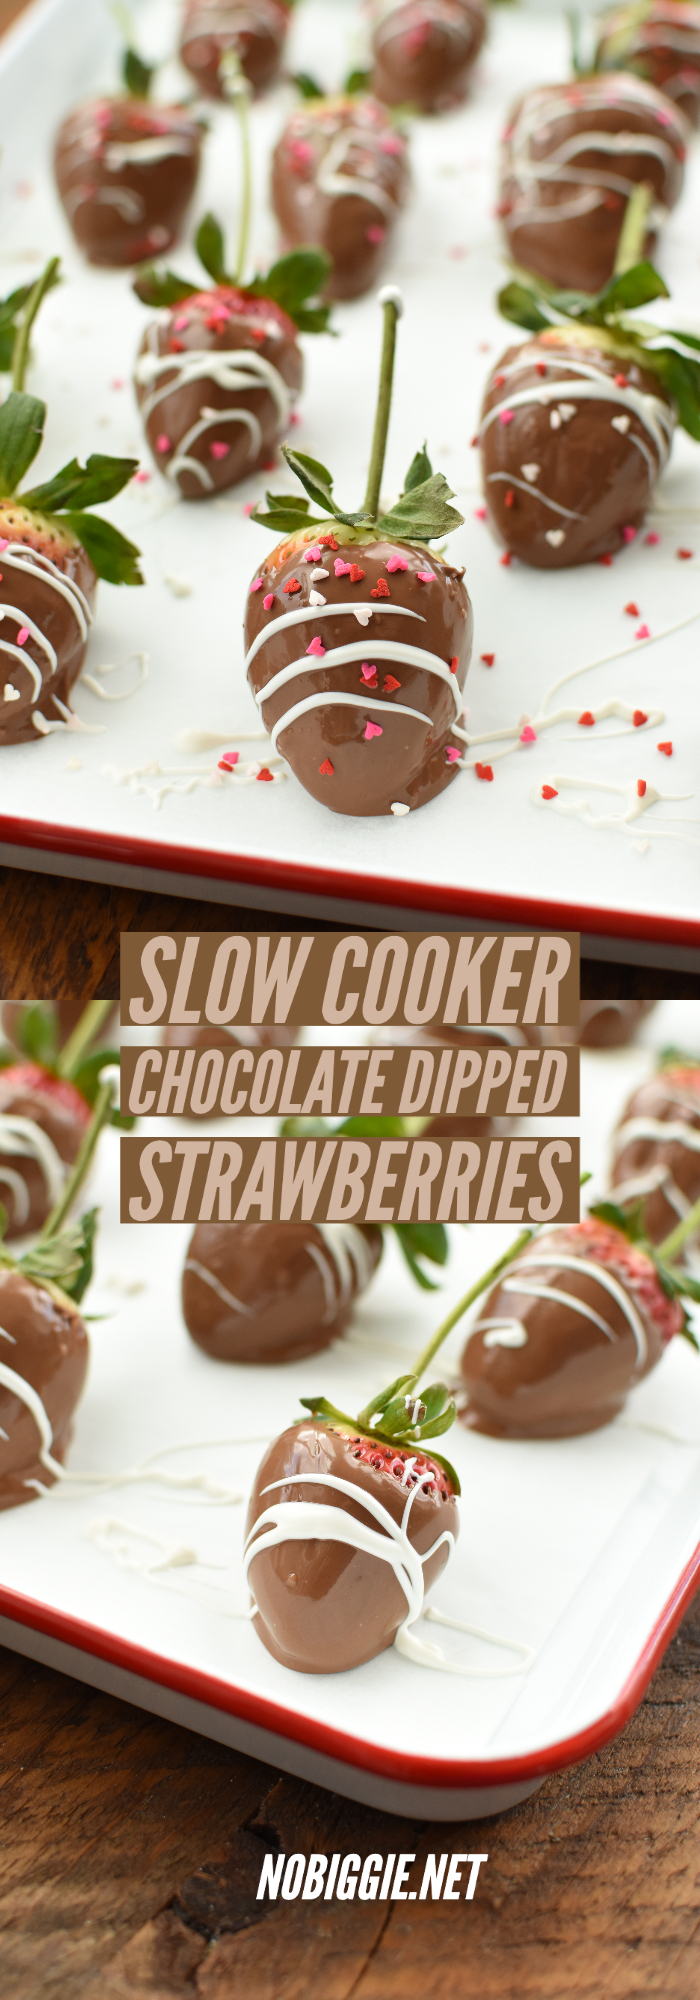 slow cooker chocolate dipped strawberries | NoBiggie.net